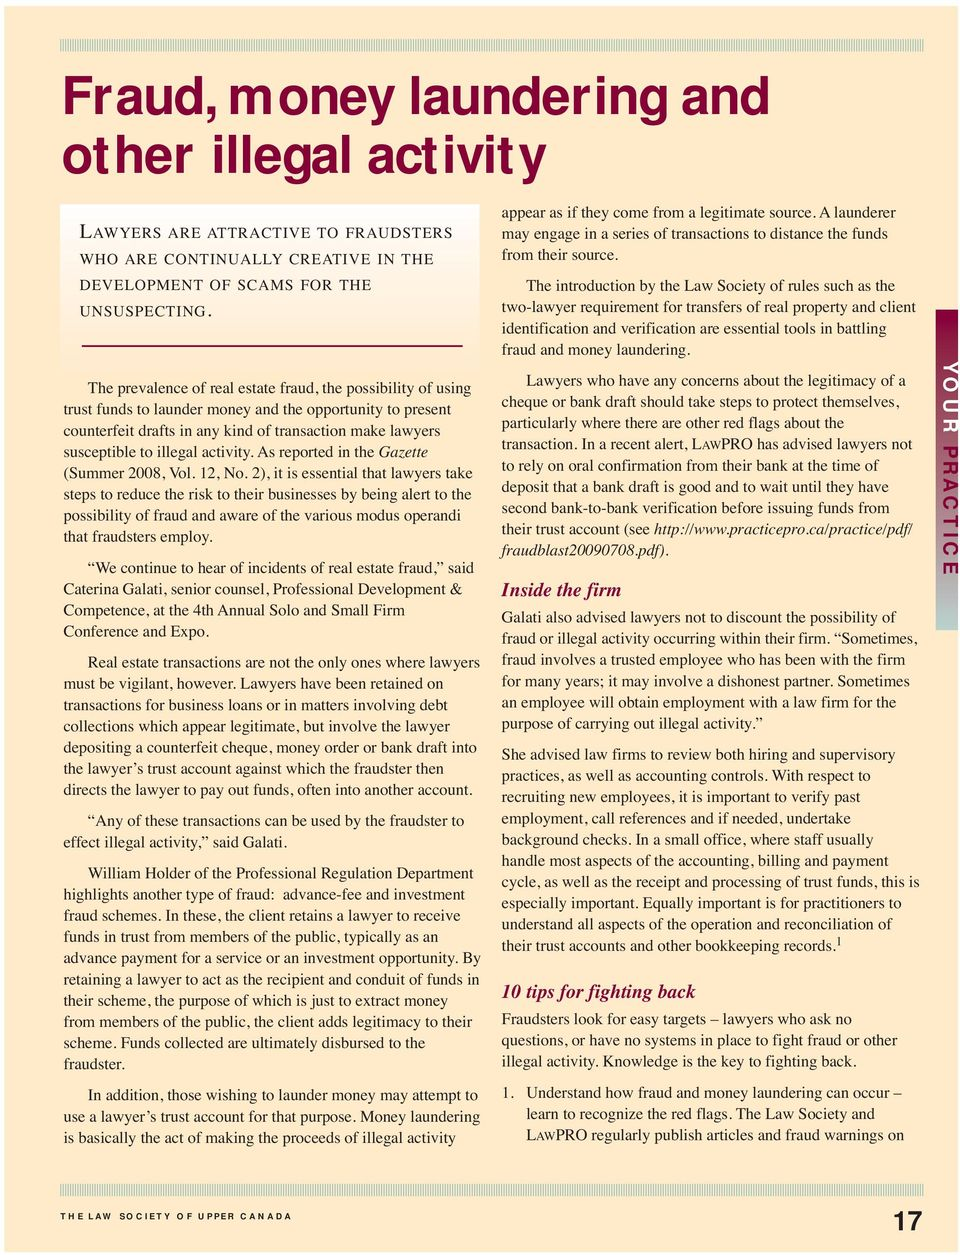 illegal activity. As reported in the Gazette (Summer 2008, Vol. 12, No.